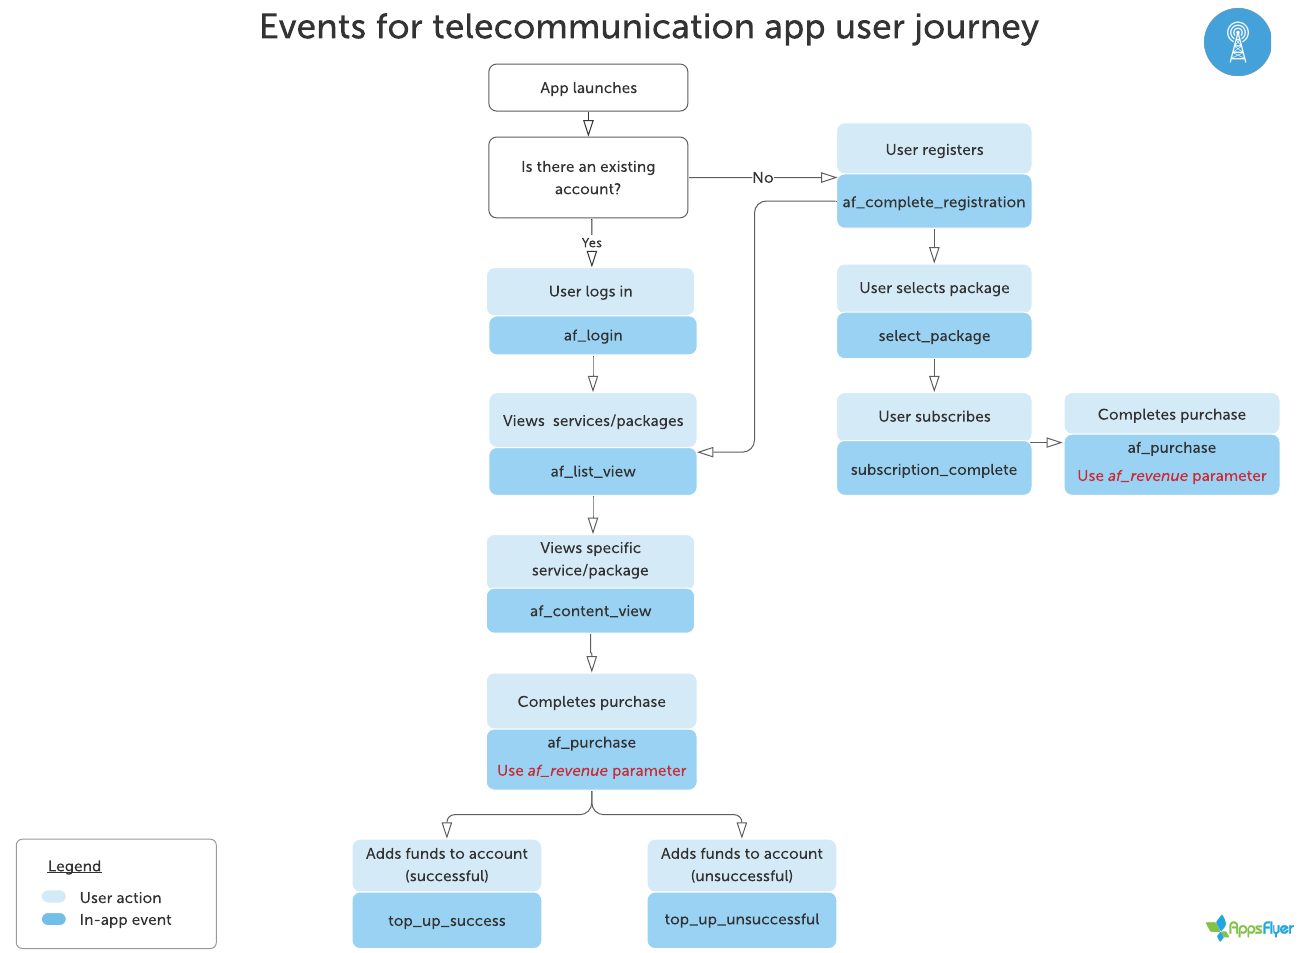 Flowchart_for_recommended_events_telecommunication_app_user_journey